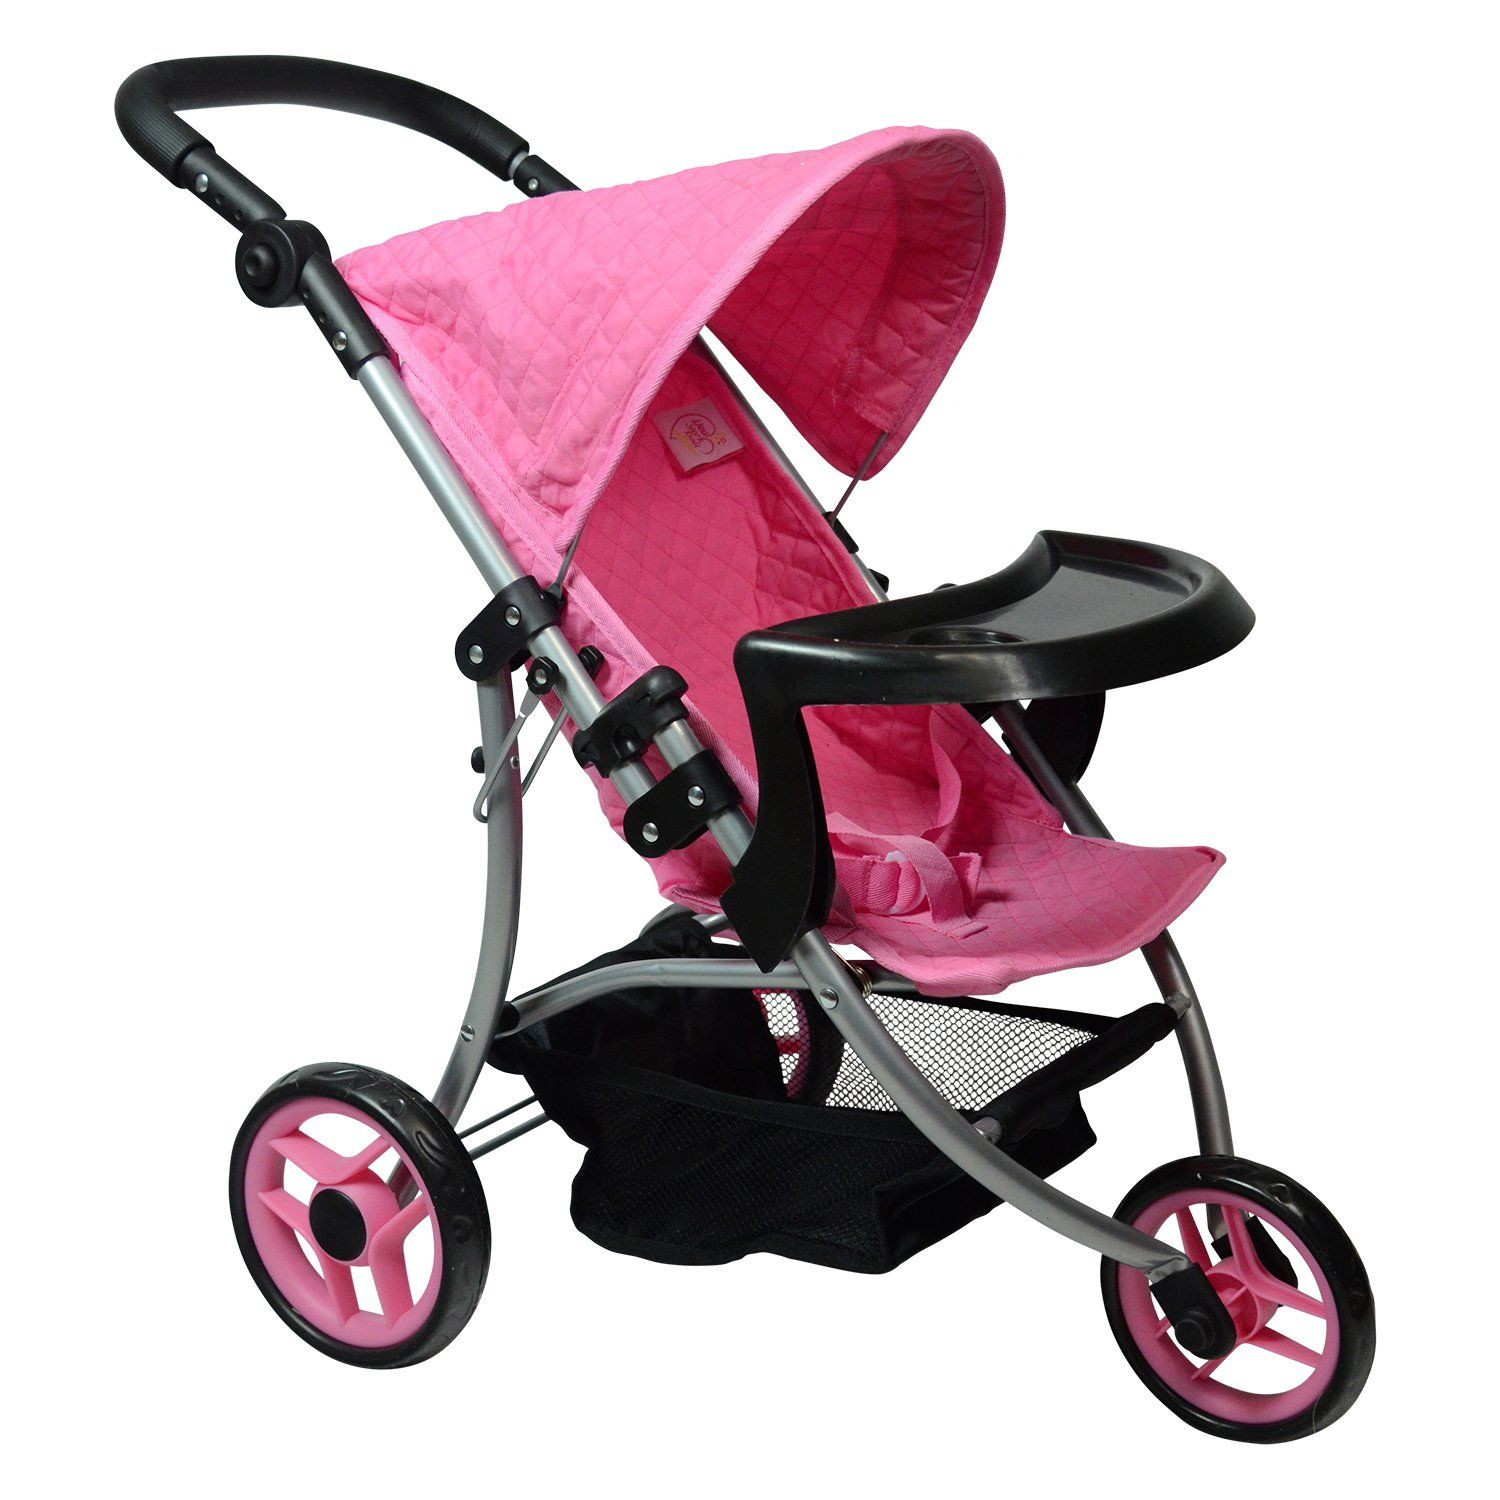 Modern Doll Jogging Stroller SUPERIOR QUALITY Quilted Fabric NEW LUXURY COLLECTION Ages 2